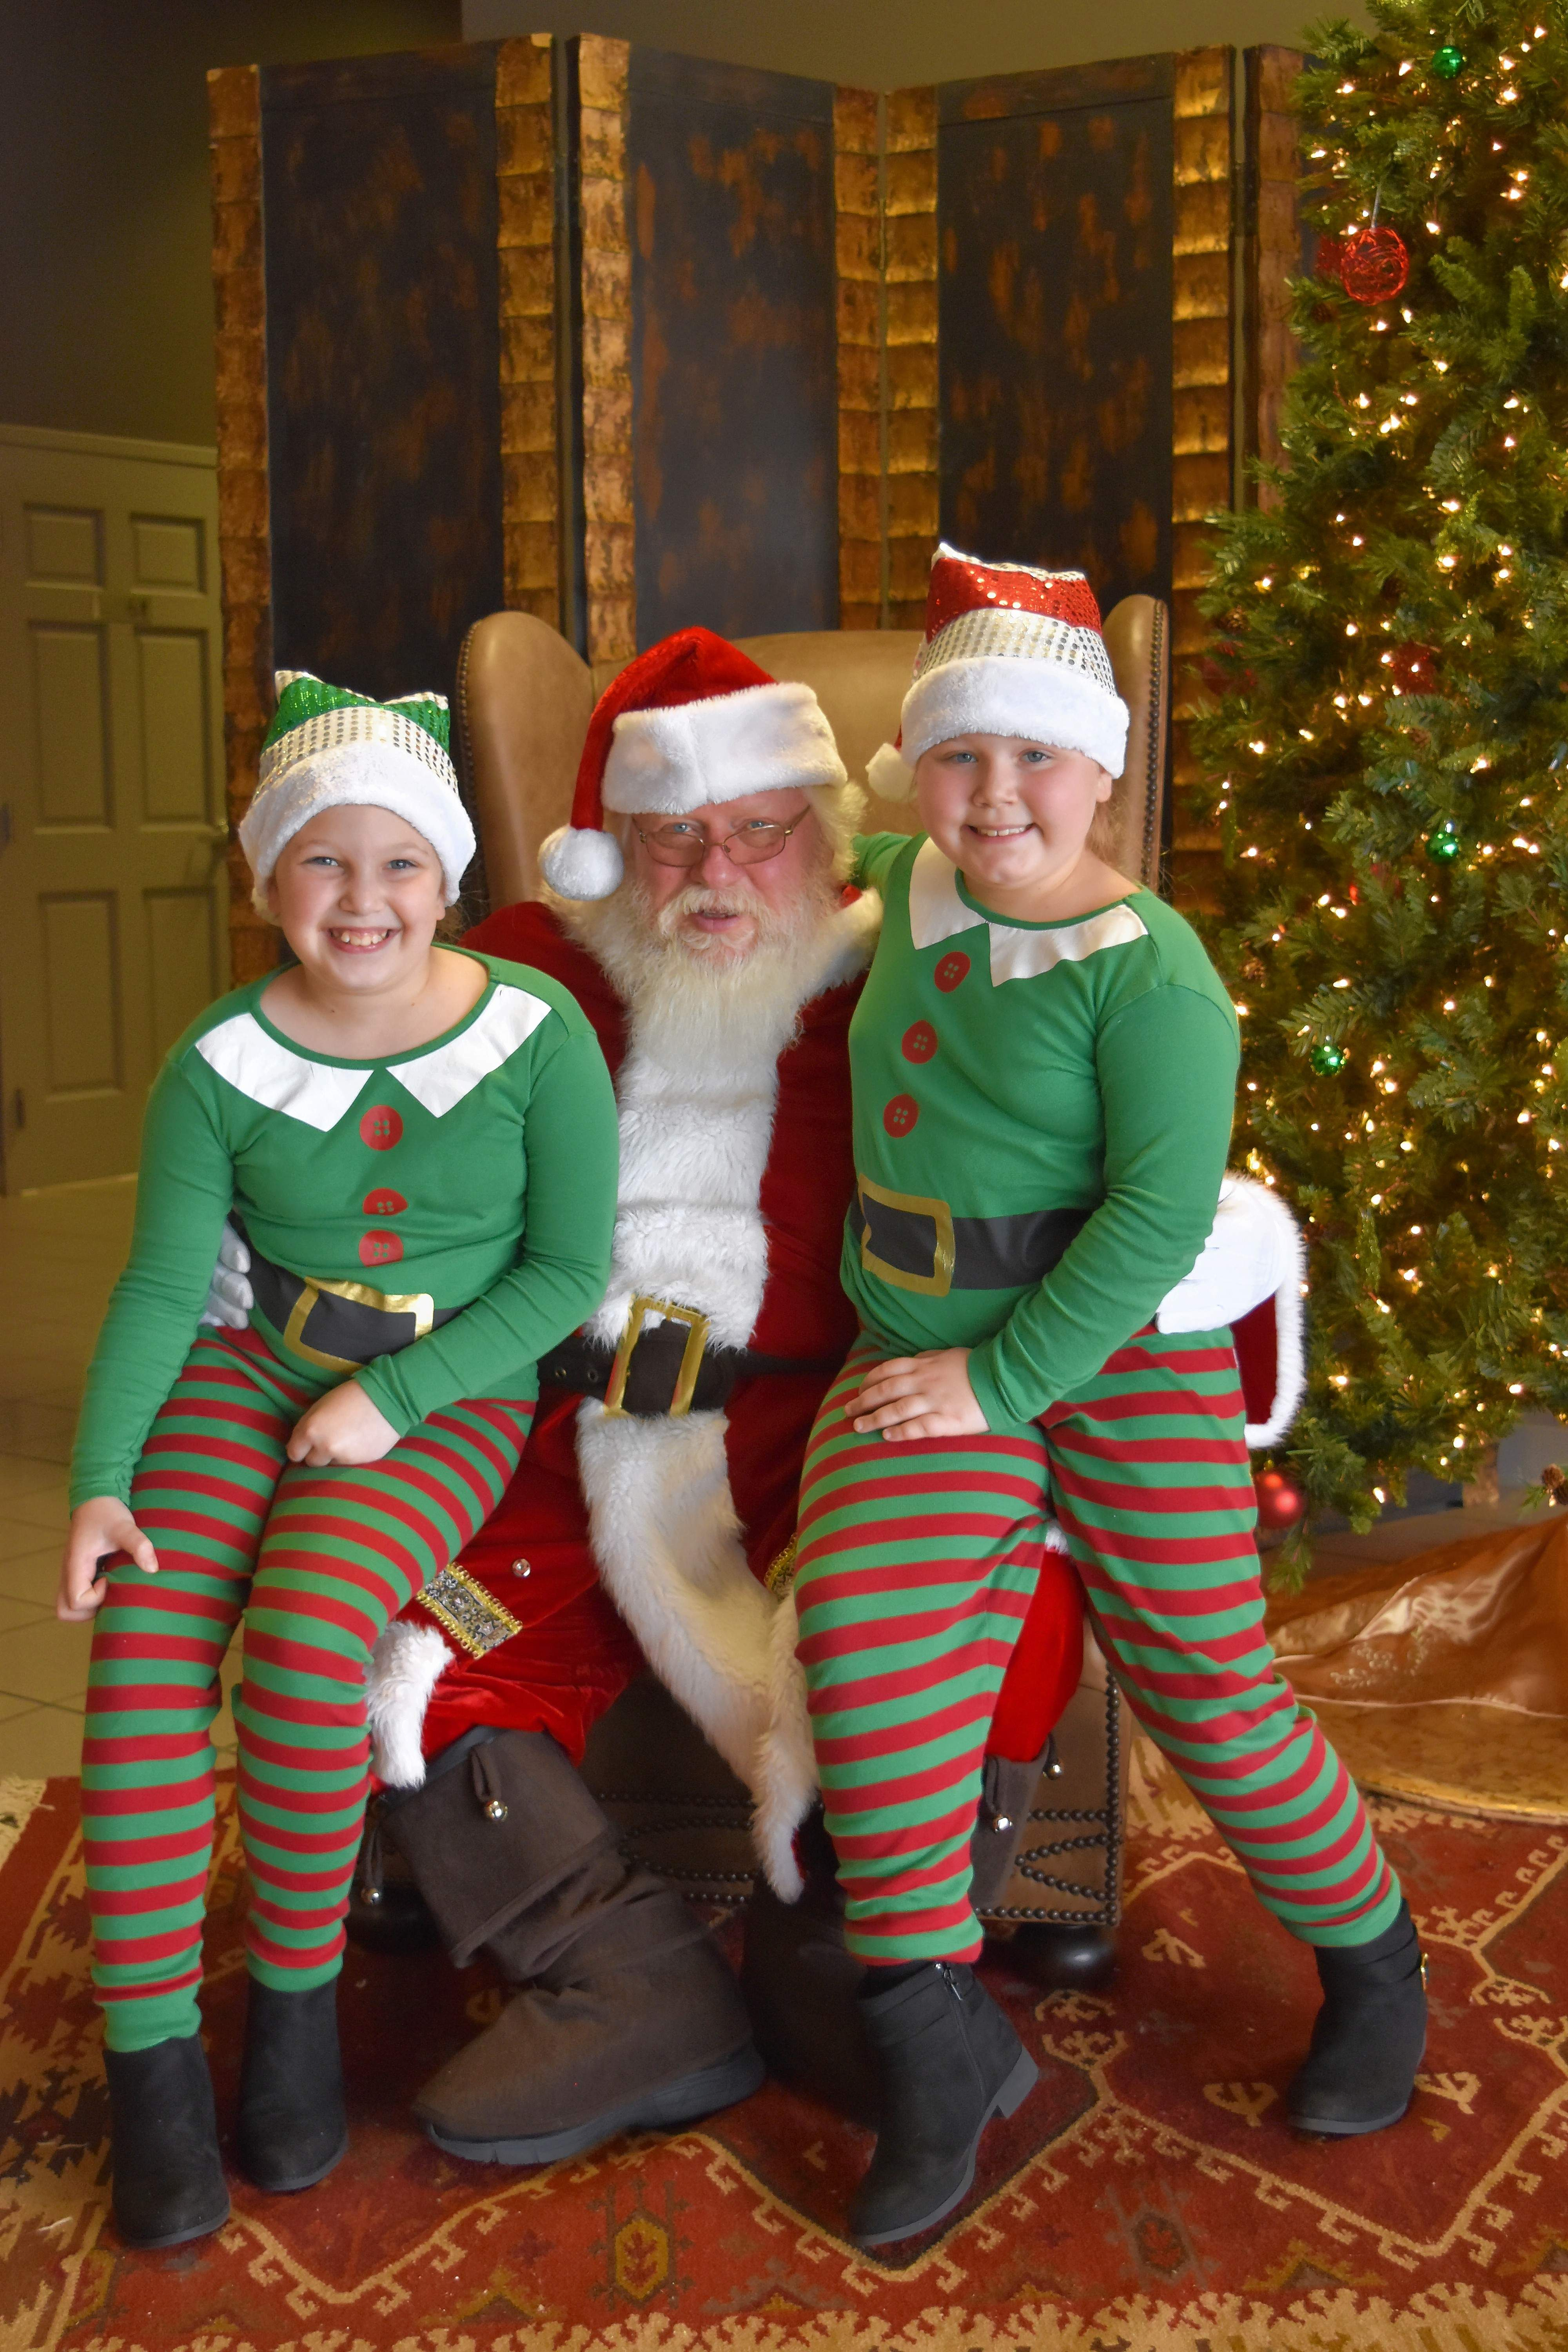 Santa Claus visited Harrisburg Saturday morning at the Bonan Business Center, along with two of his elves, Klaire Stich, left, and Adi Stich of Wayne City.